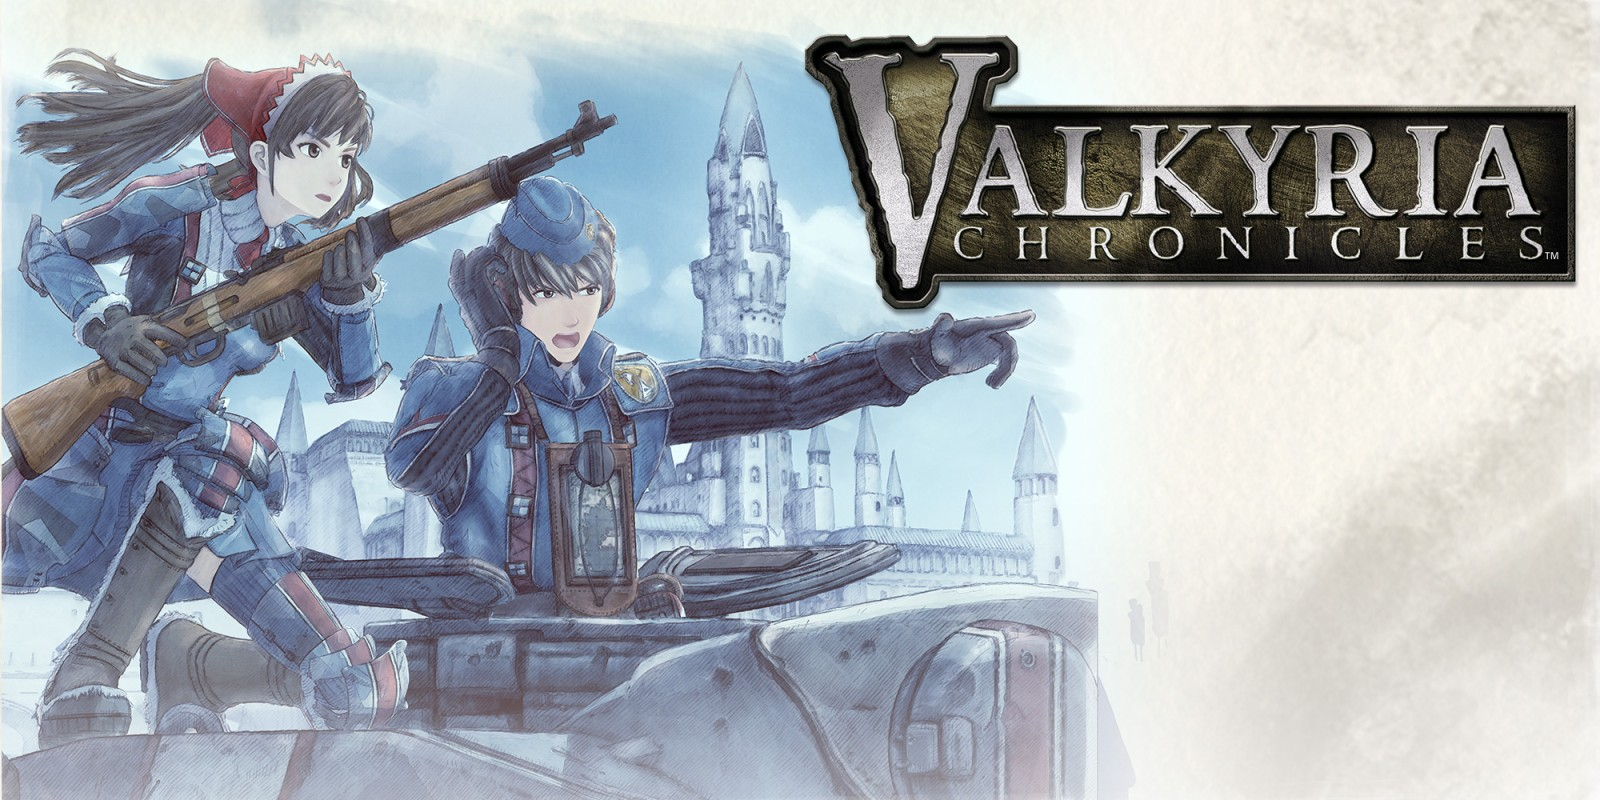 Digital Switch games from $6: Valkyria Chronicles, Minit, Runbow, many more